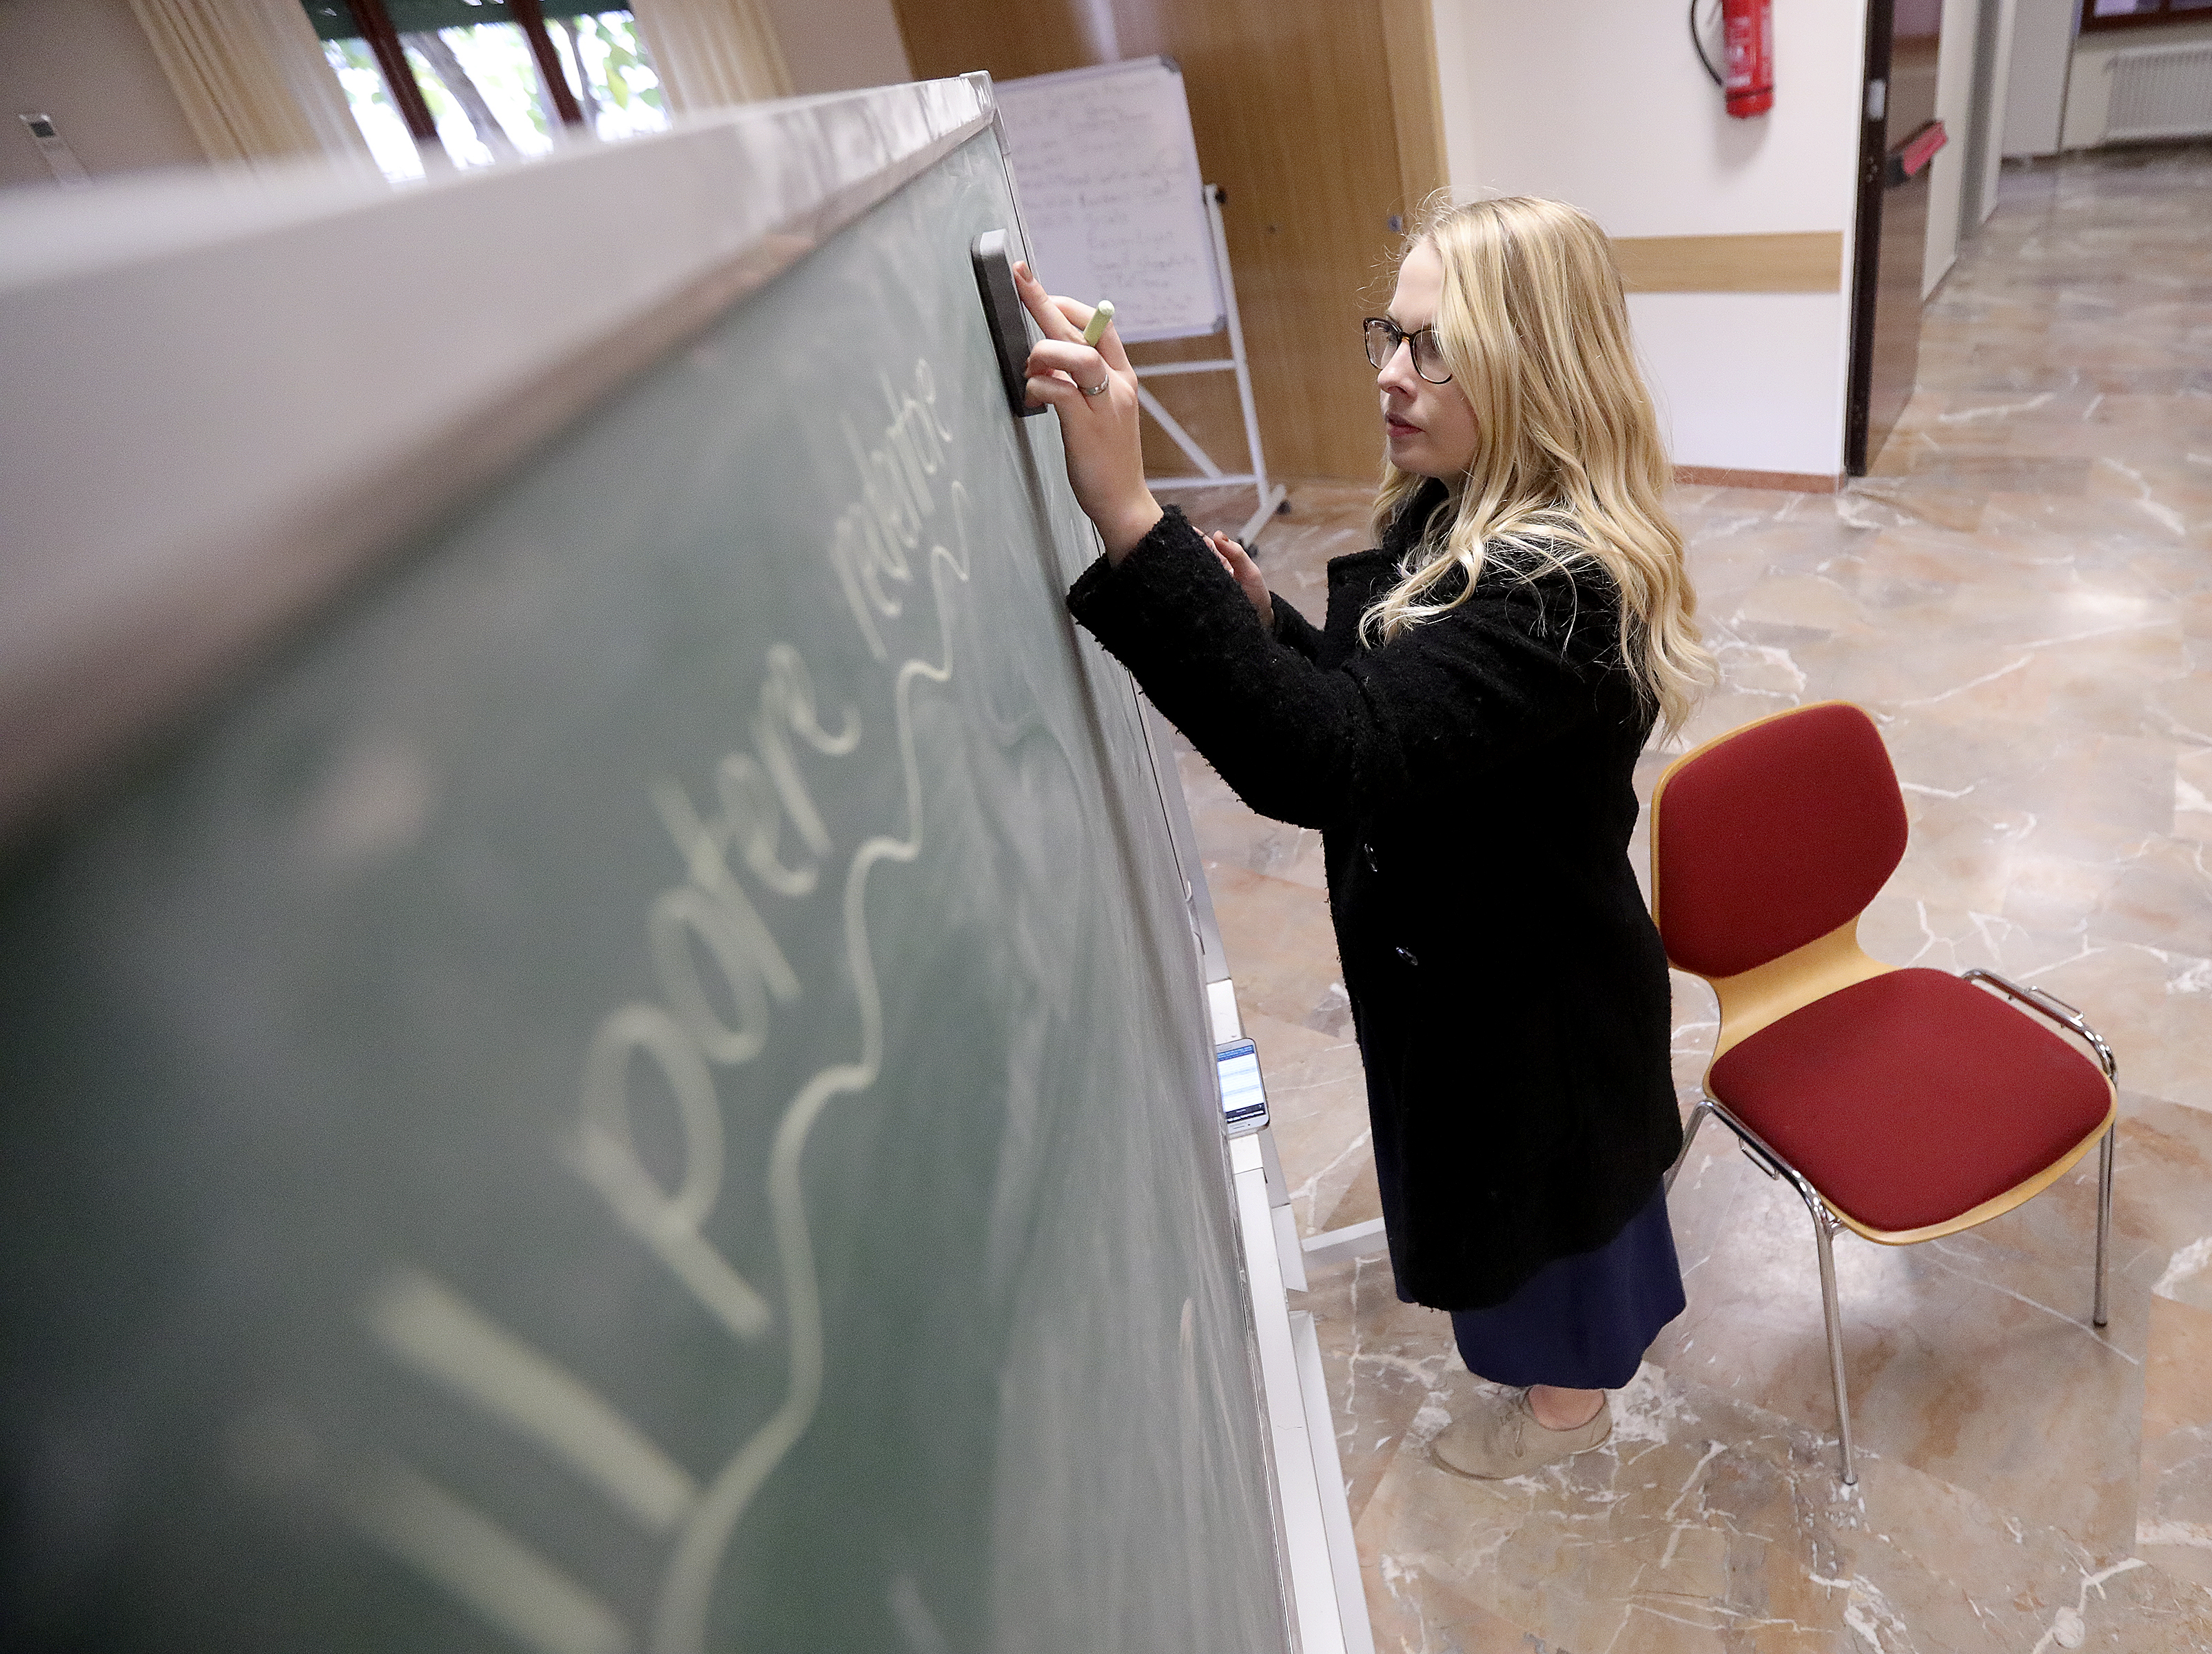 Sister Sadie Decker writes on a chalkboard while preparing to teach a lesson to a recent convert at the Rome 2nd/5th wards meetinghouse in Rome, Italy, on Saturday, Nov. 17, 2018.